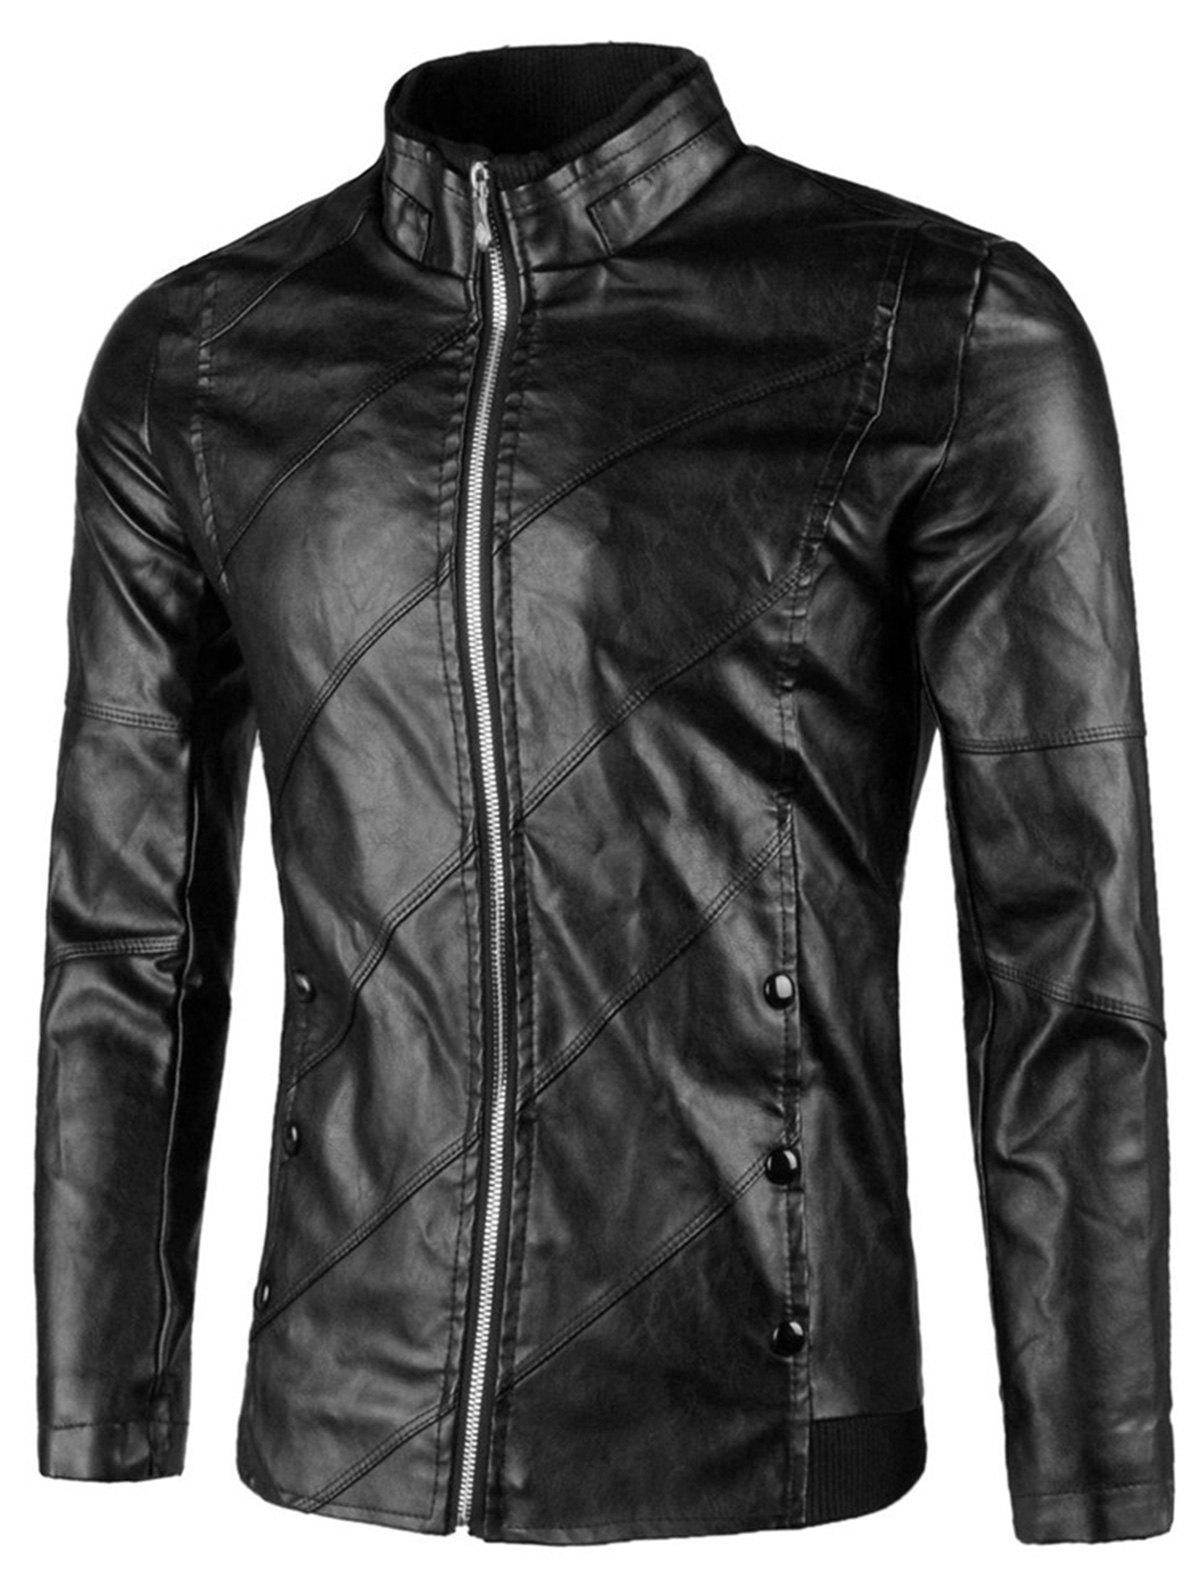 Flap Button Embellished Zip Up Faux Leather Jacket - BLACK XL